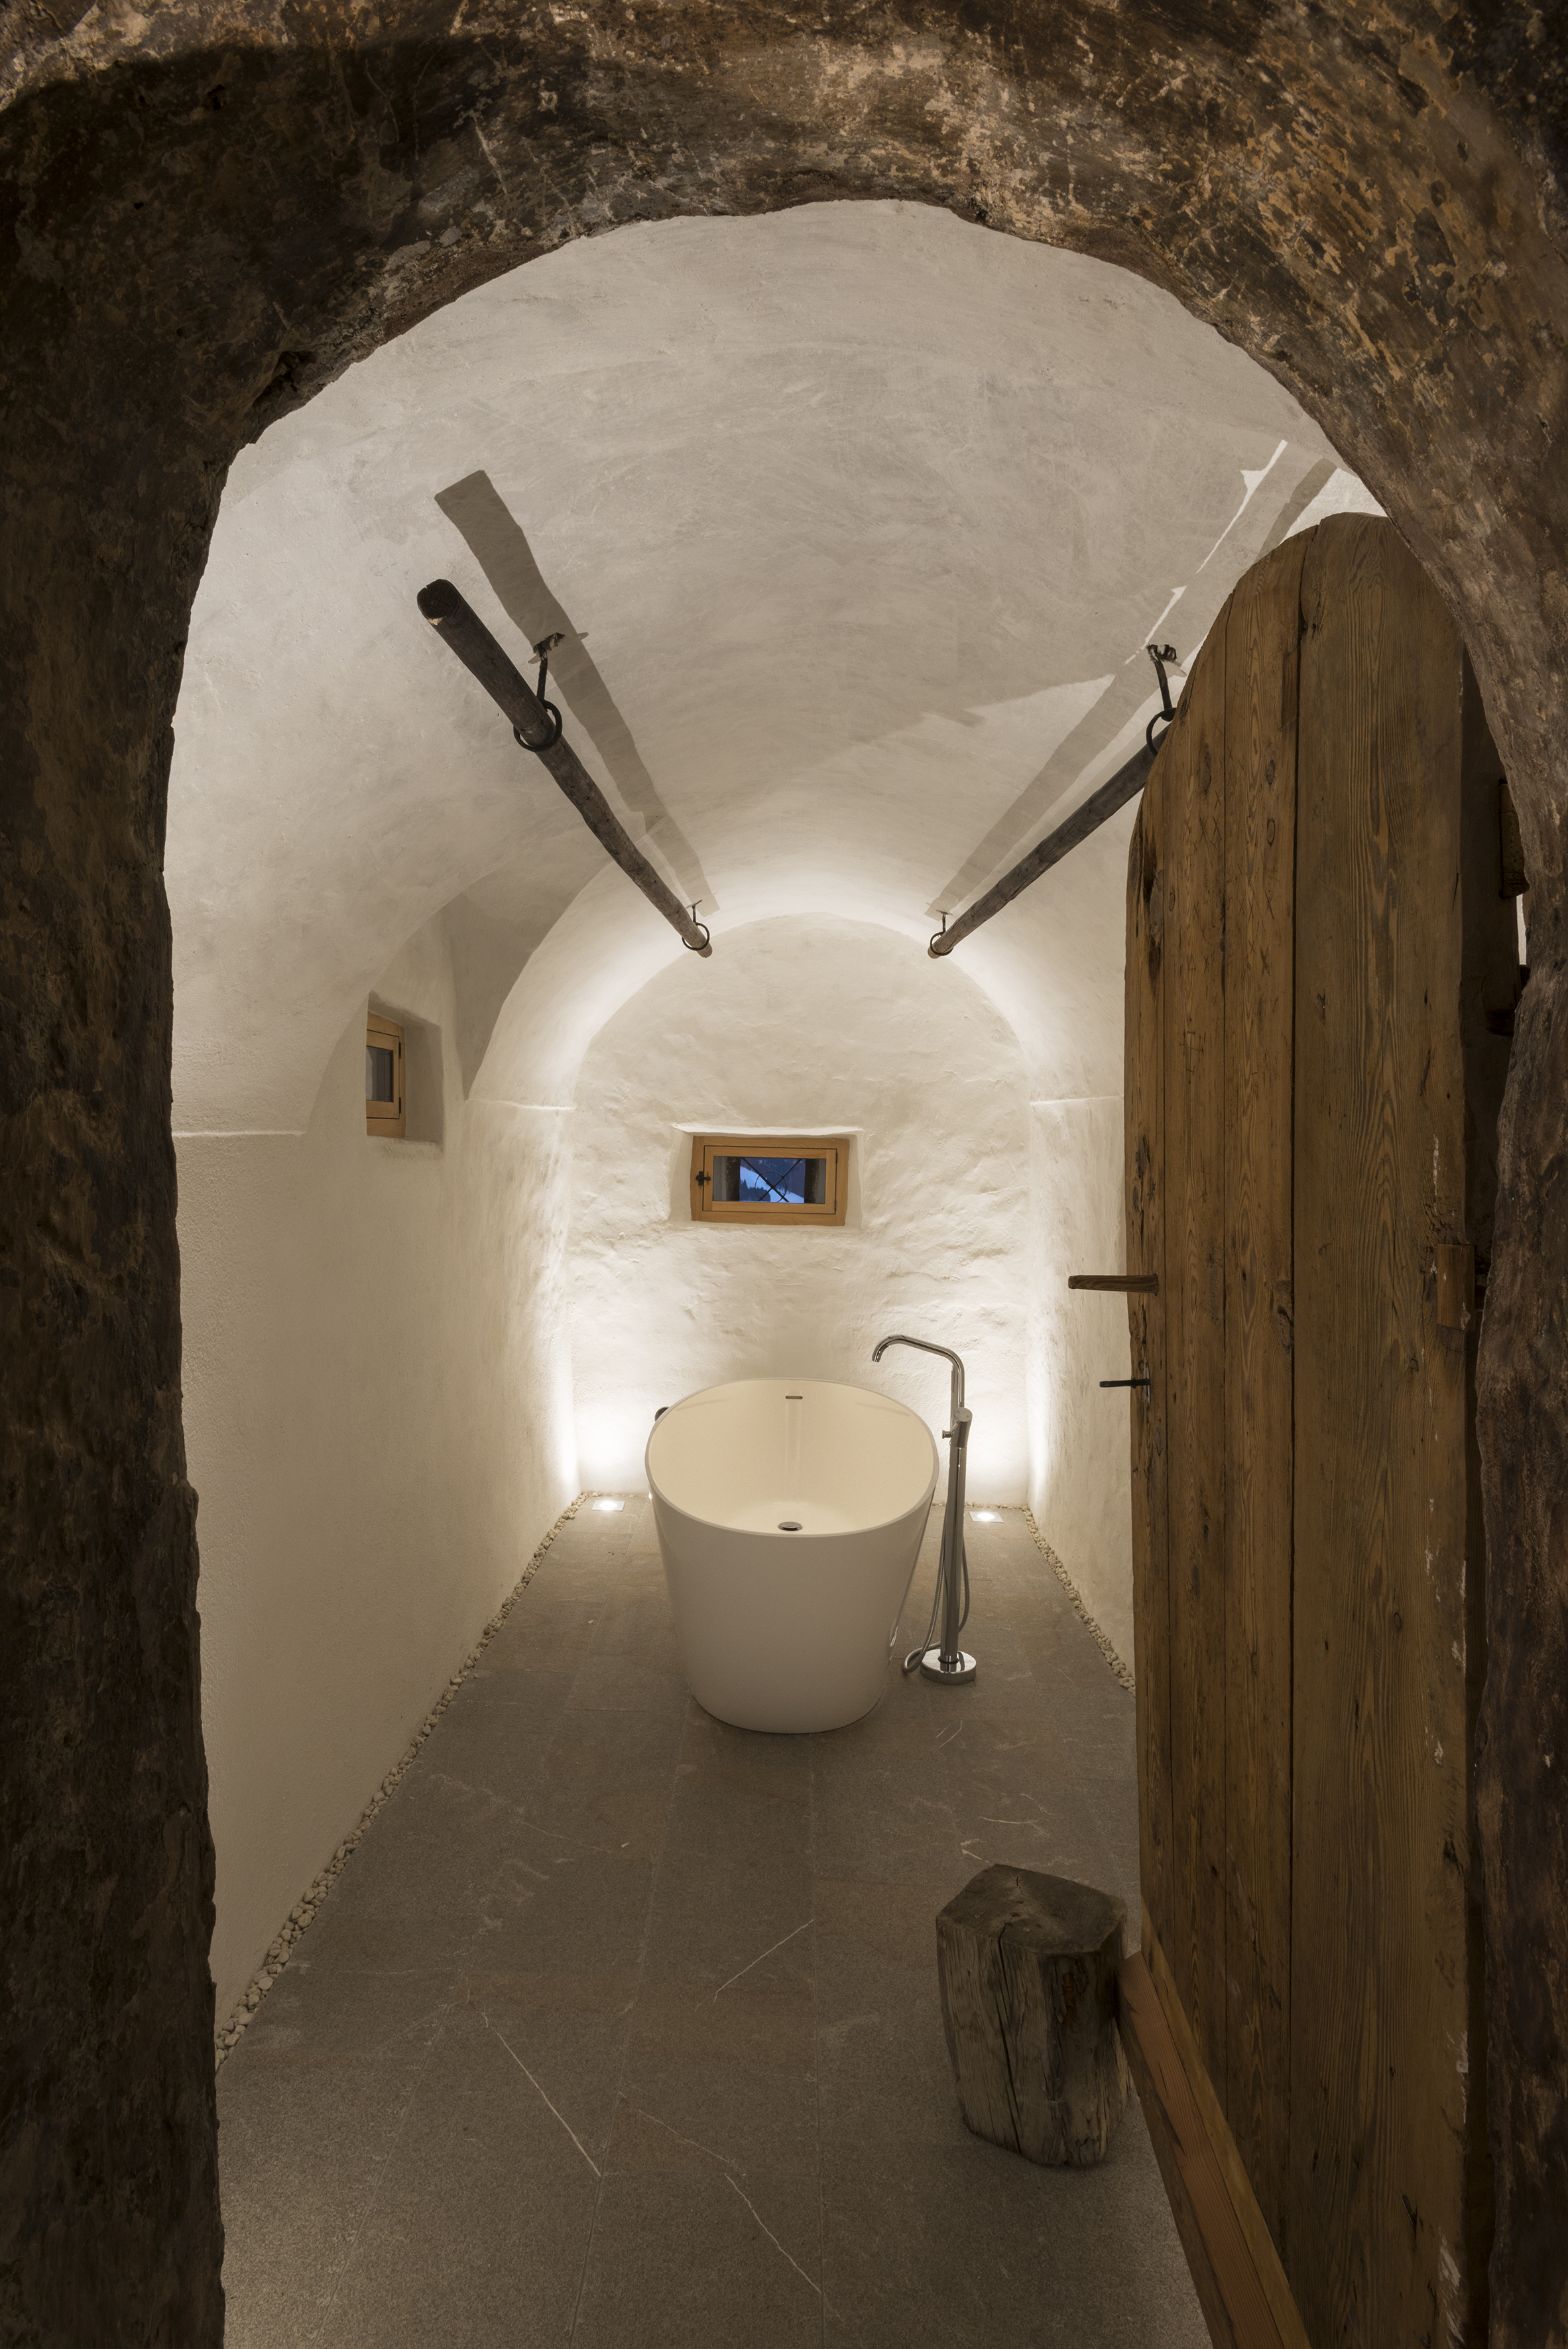 Bathtub in vaulted room